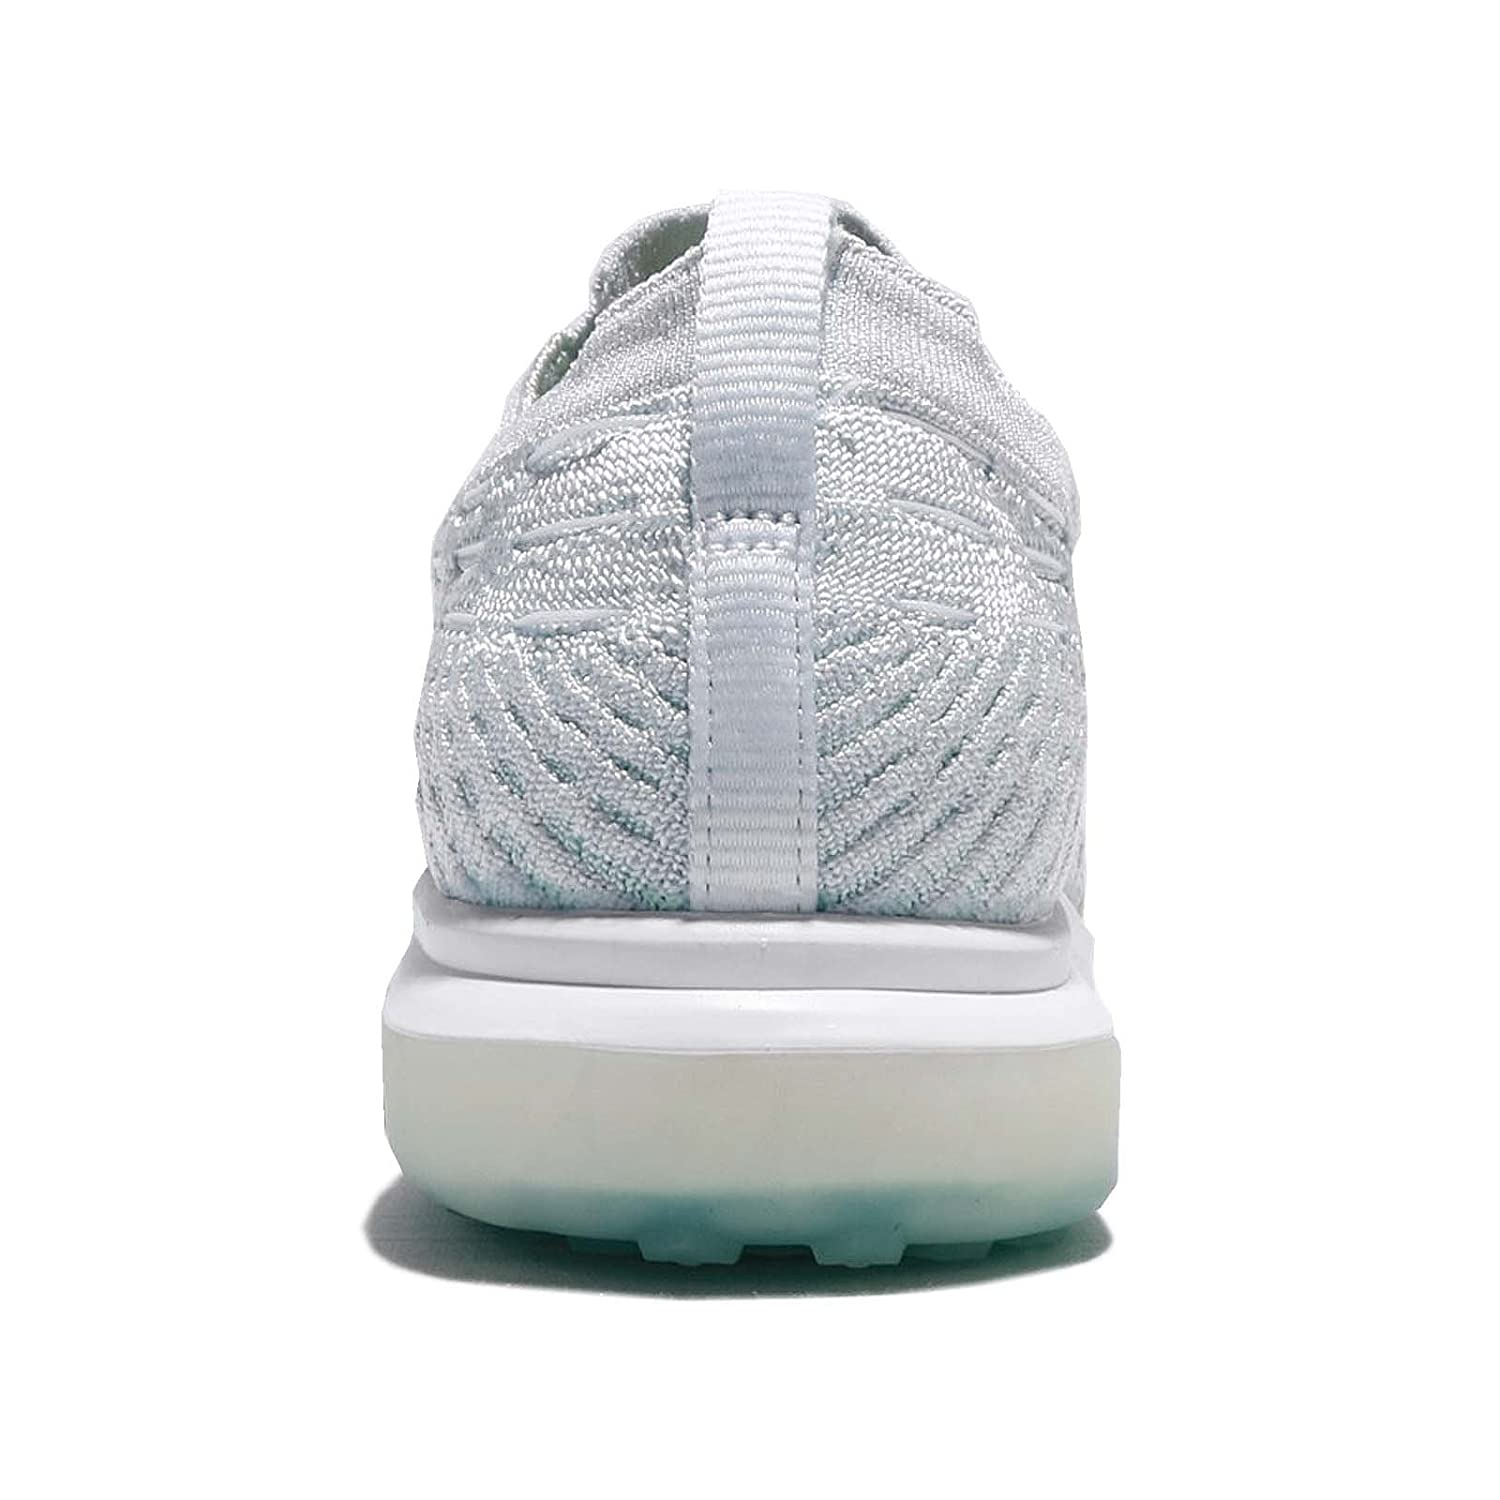 b9190bbf73119 Nike Womens Air Zoom Fearless Flyknit Running Trainers 850426 ...